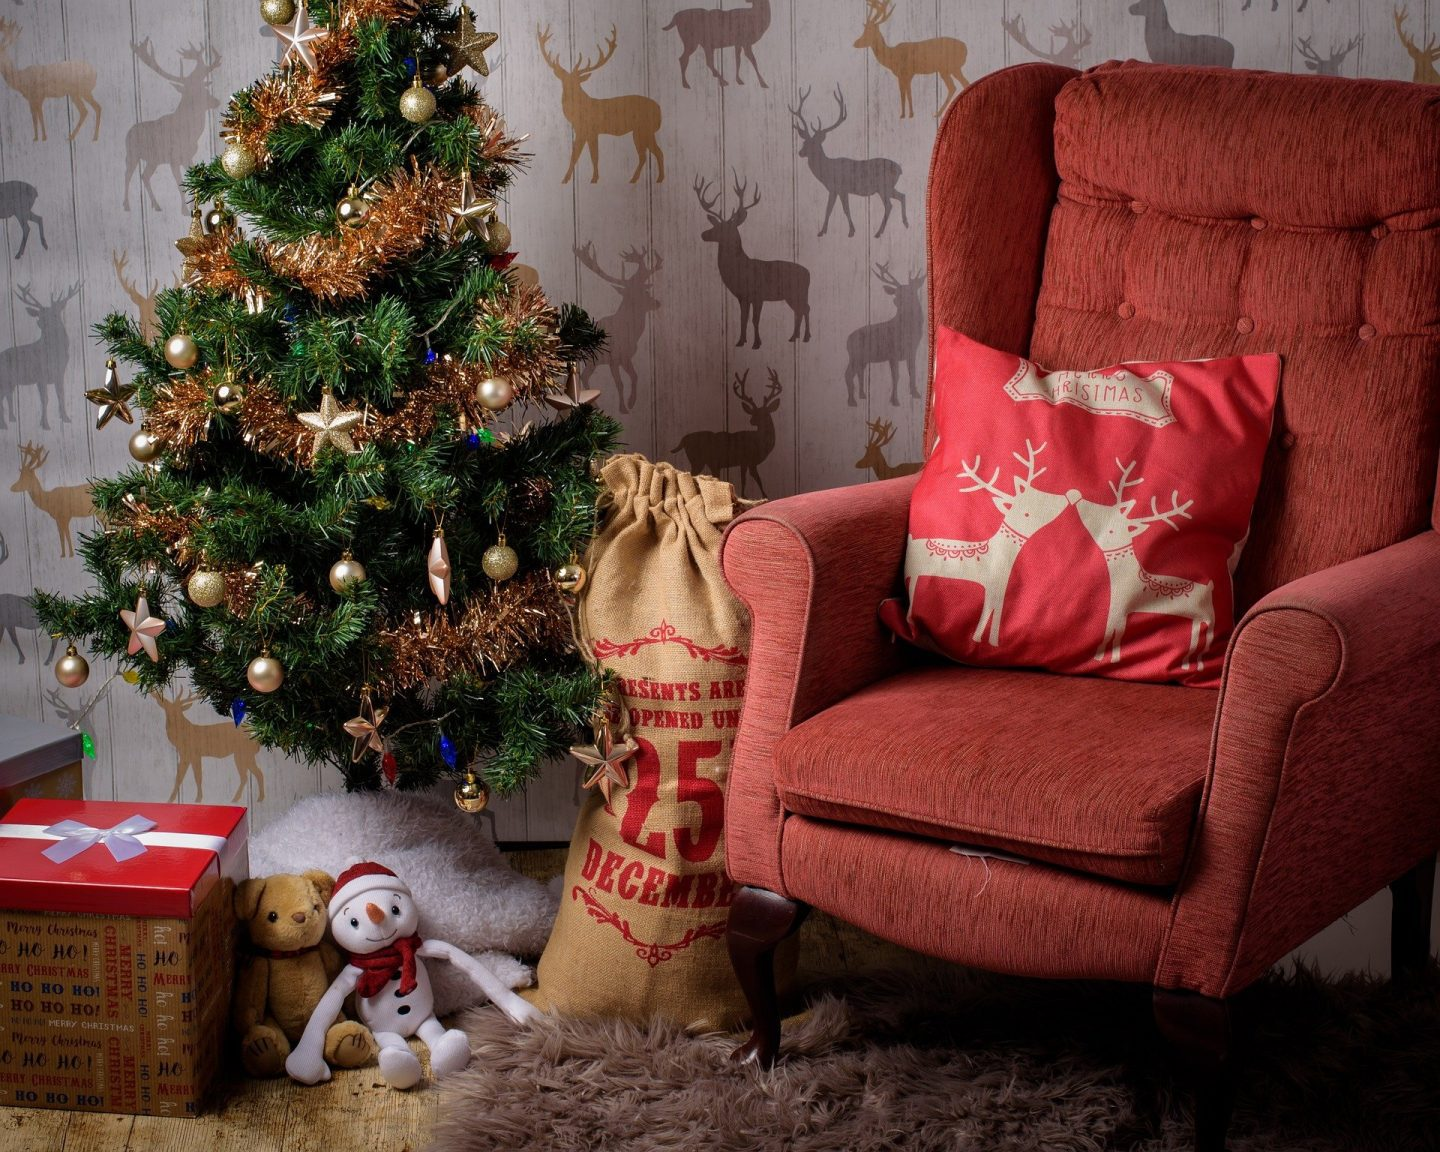 A Christmas tree with a santa sack and a red arm chair next to it